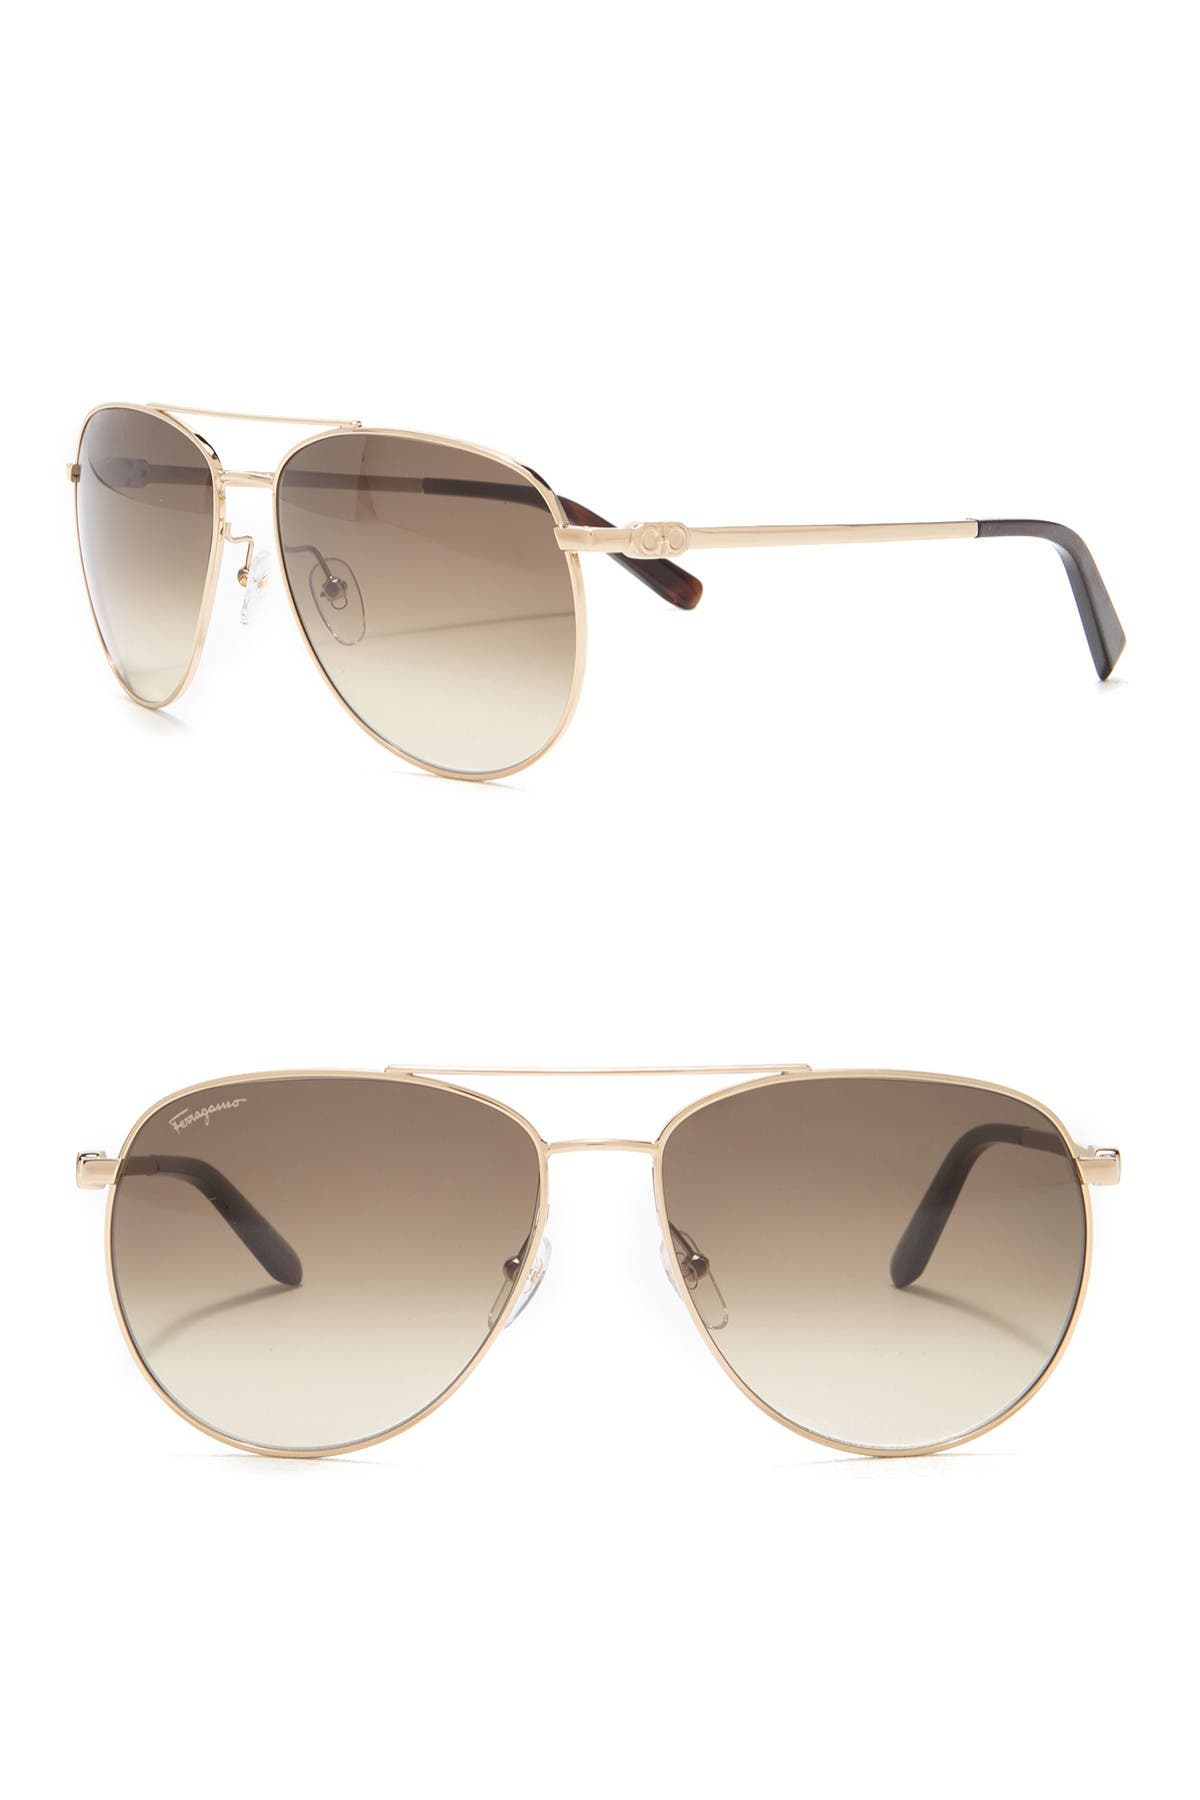 Image of Salvatore Ferragamo 60mm Aviator Sunglasses